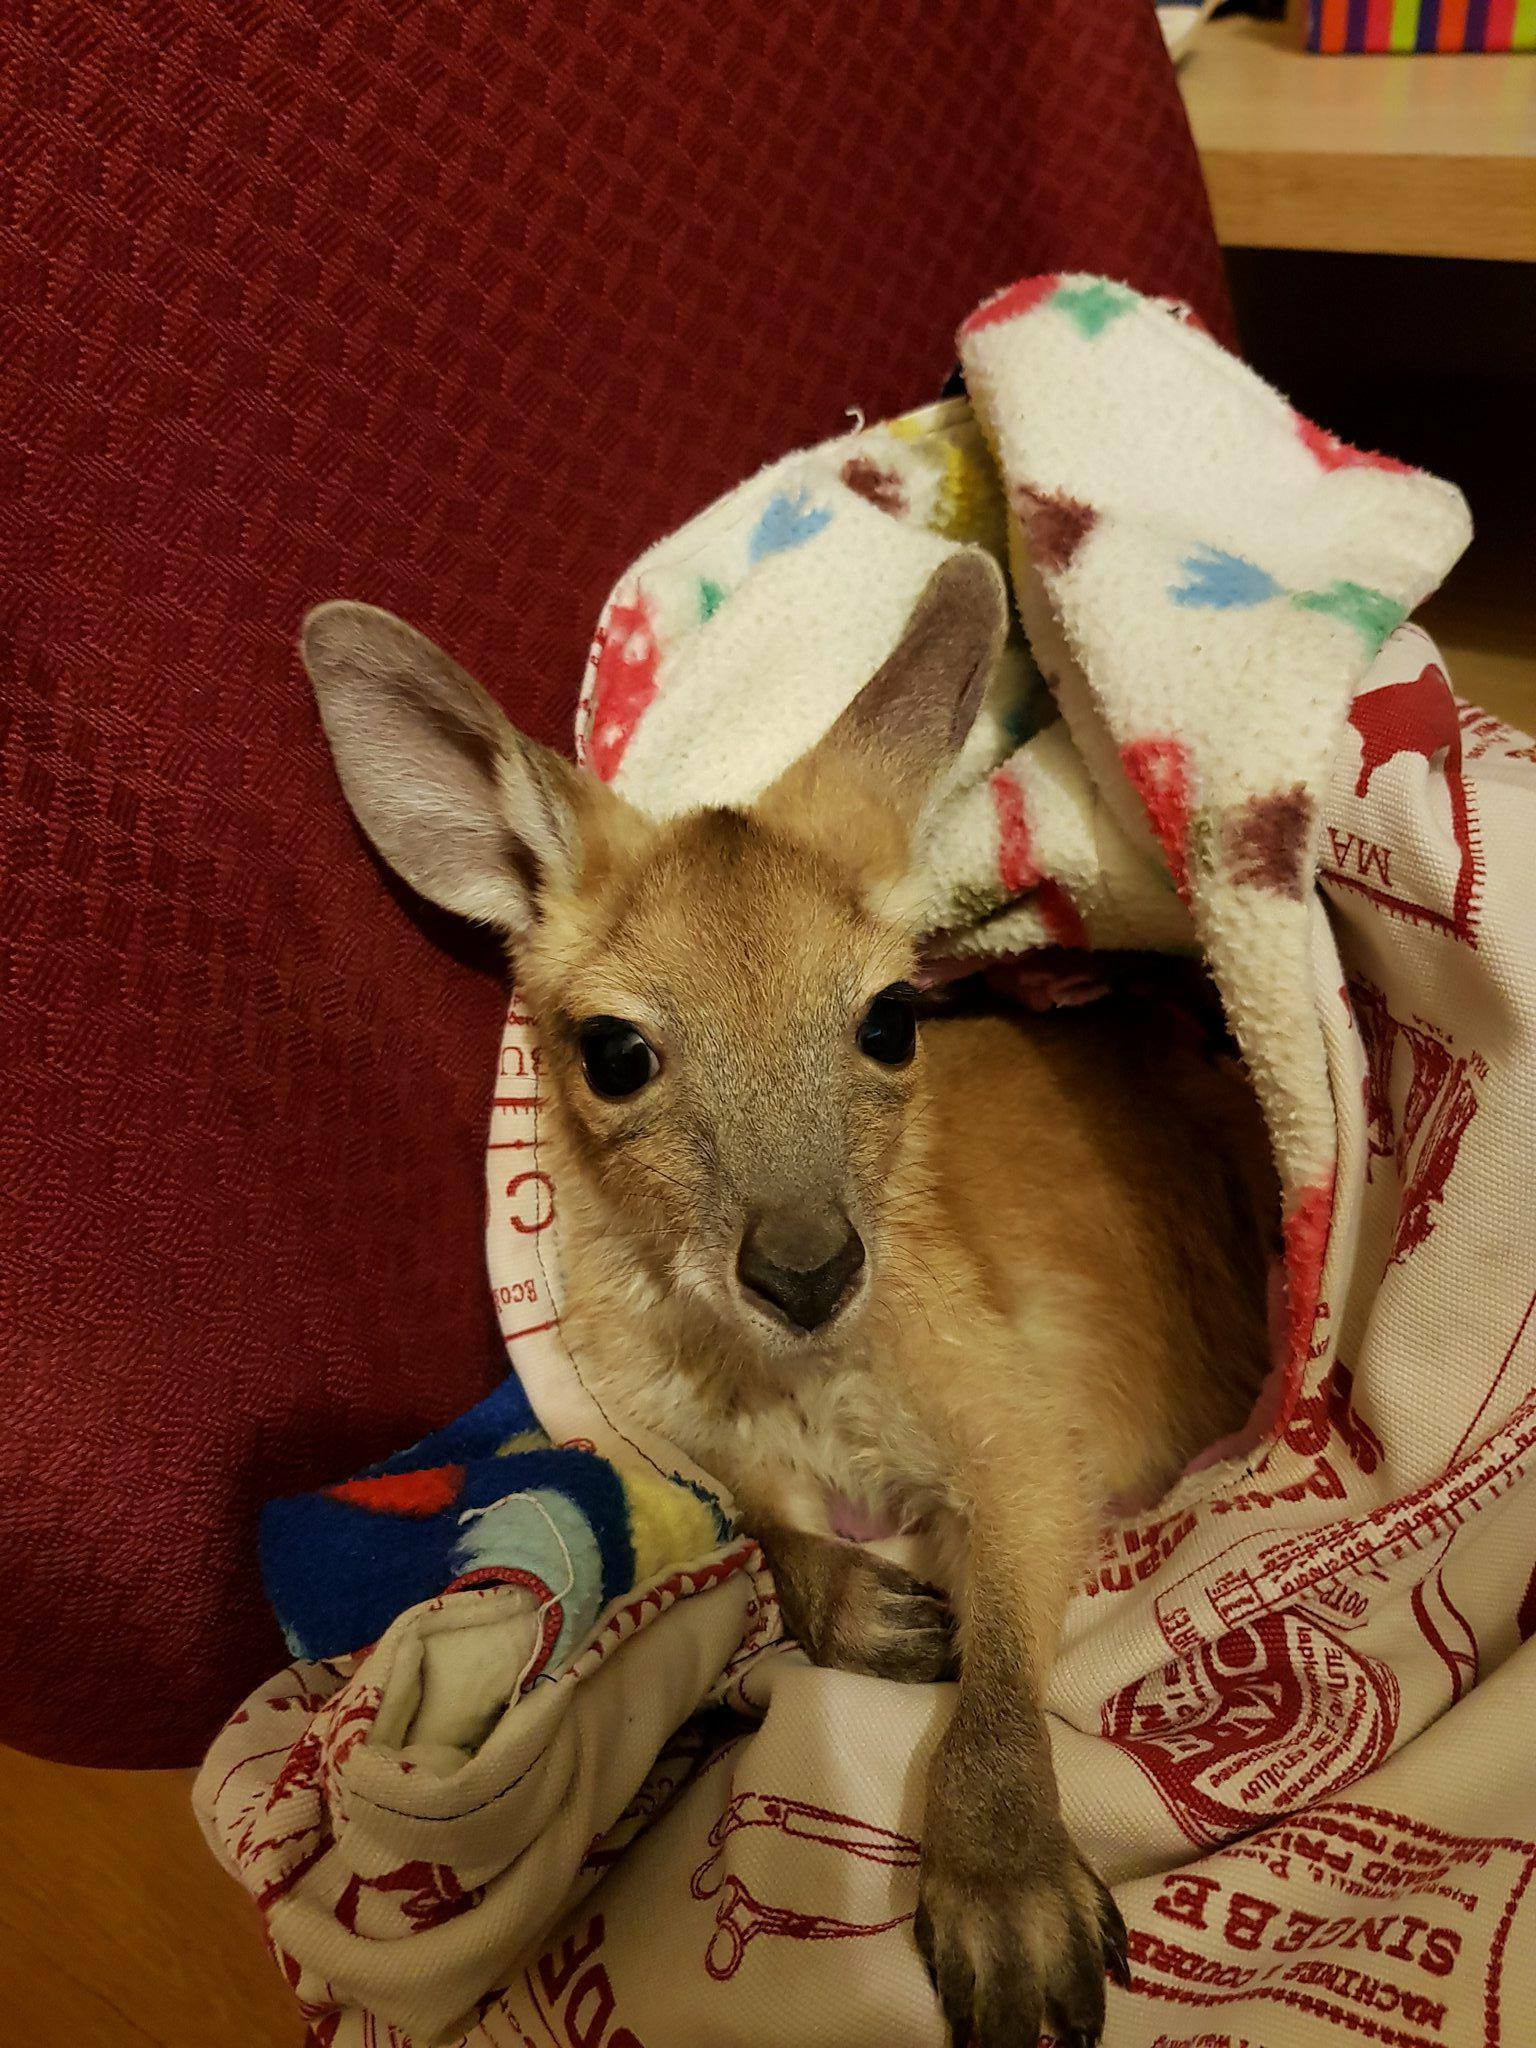 Joey in pouch